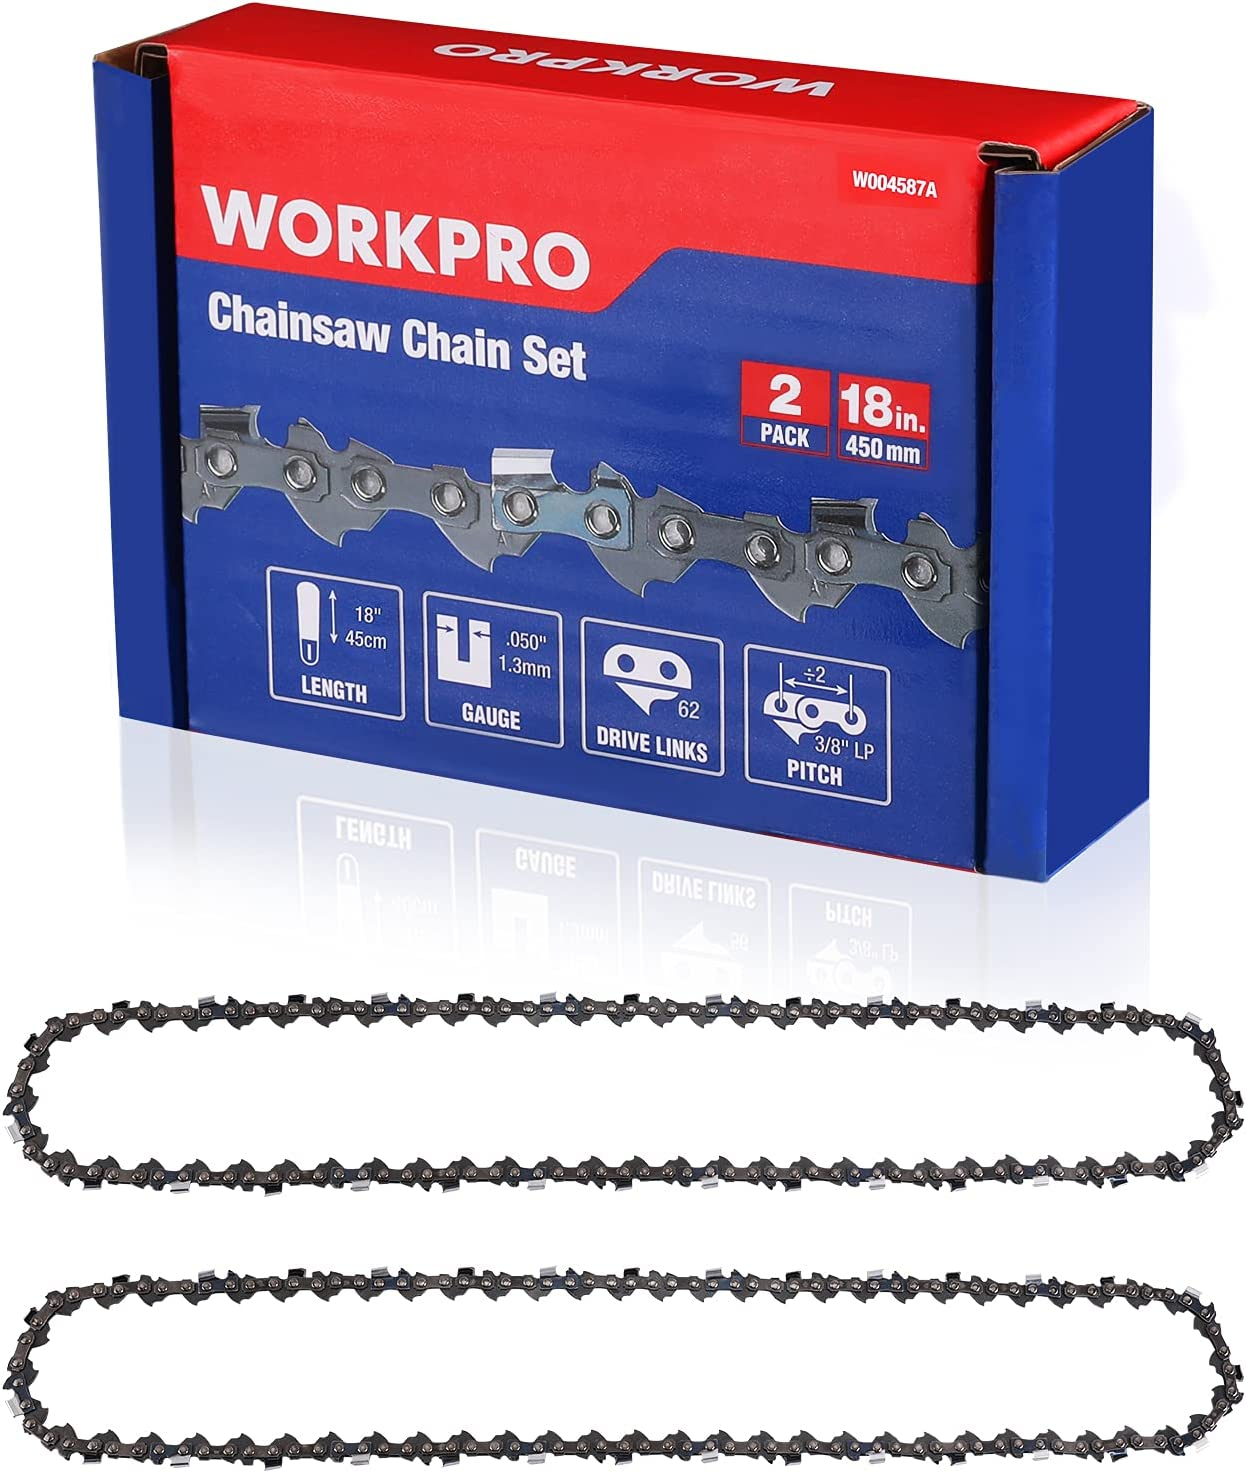 New York Mall WORKPRO 2-Pack Chainsaw Chain for 18-Inch 3 Bar Driv 62 8